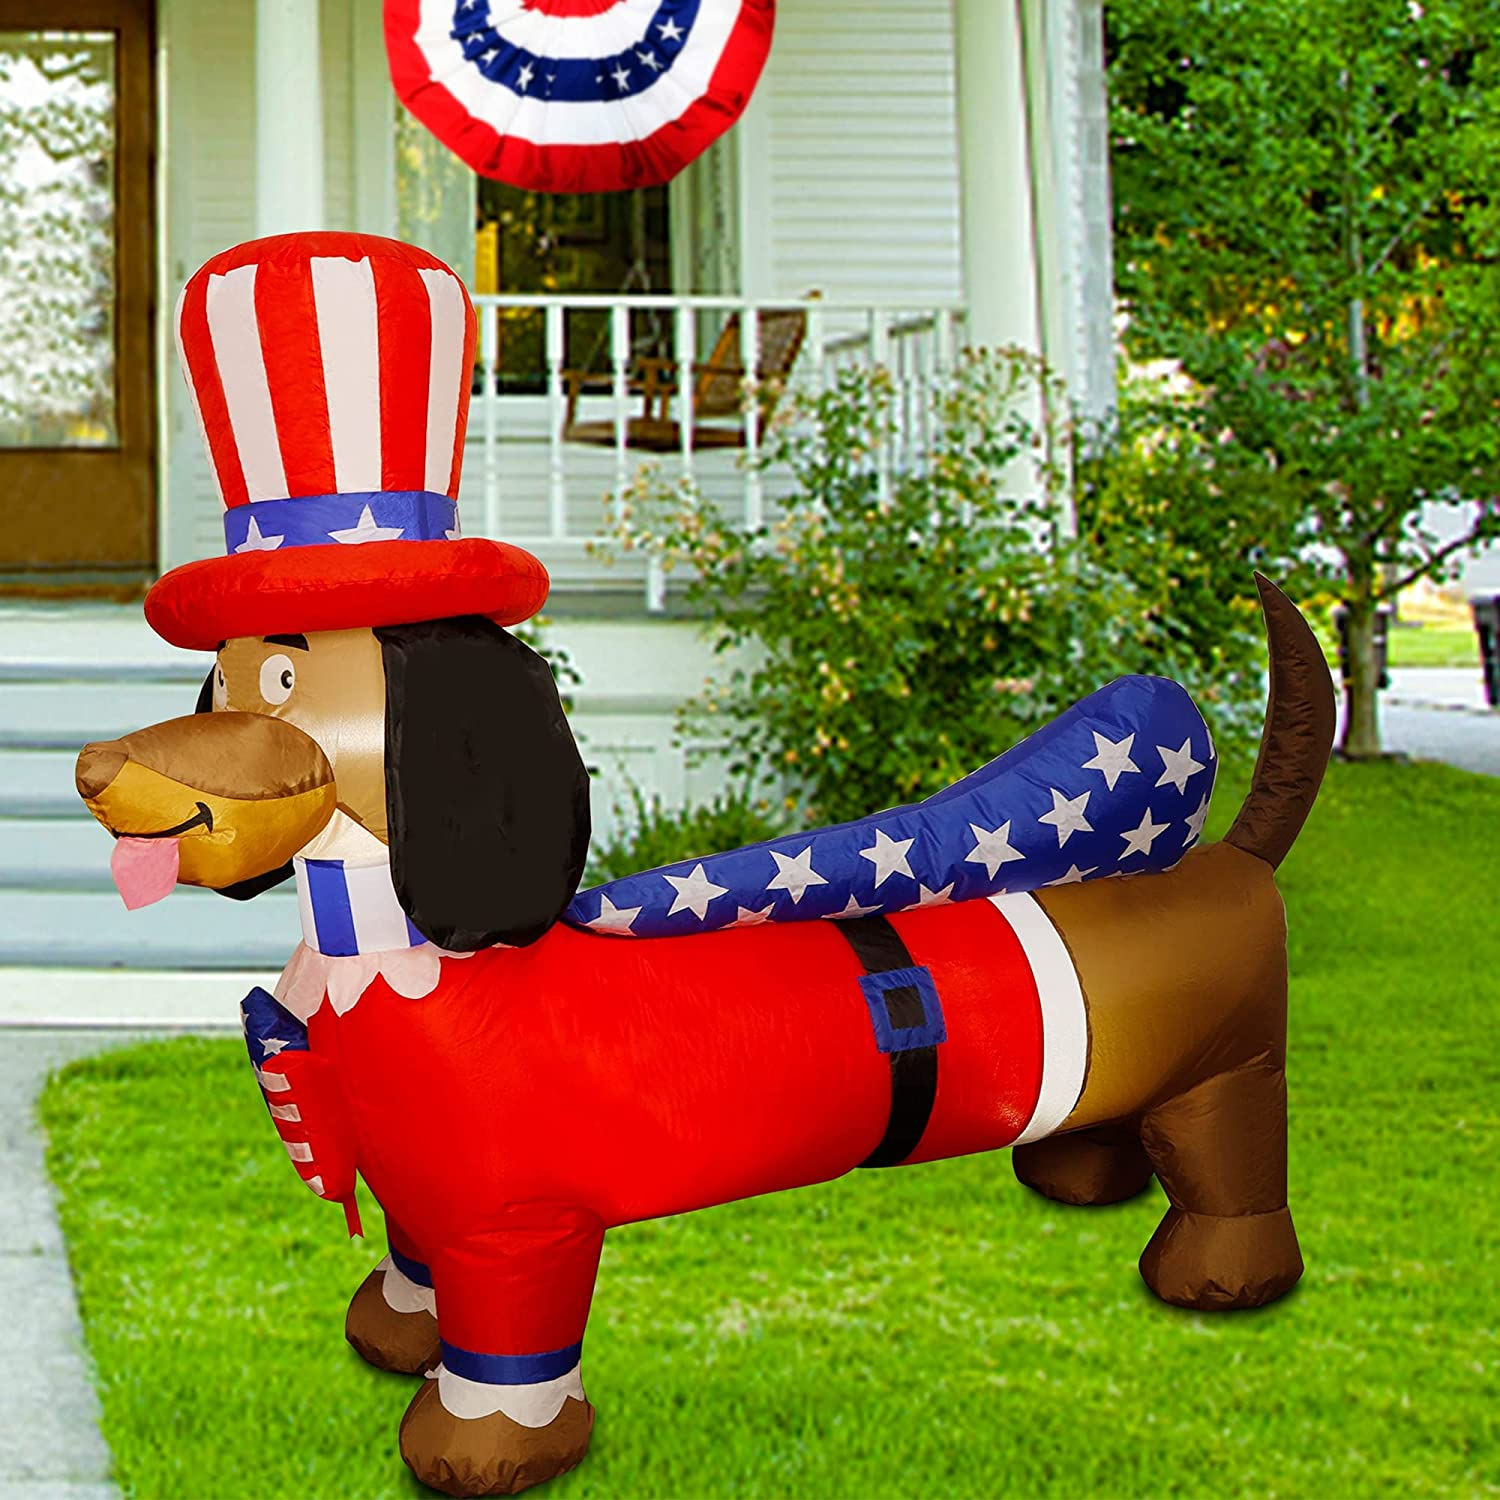 Twinkle Star 5FT Long Patriotic Inflatable Lighted Wiener Dog with Top Hat, Blow Up Independence Day 4th of July Outdoor Uncle Sam Dachshund Decor Lawn Yard Home Celebration Garden Party Decorations